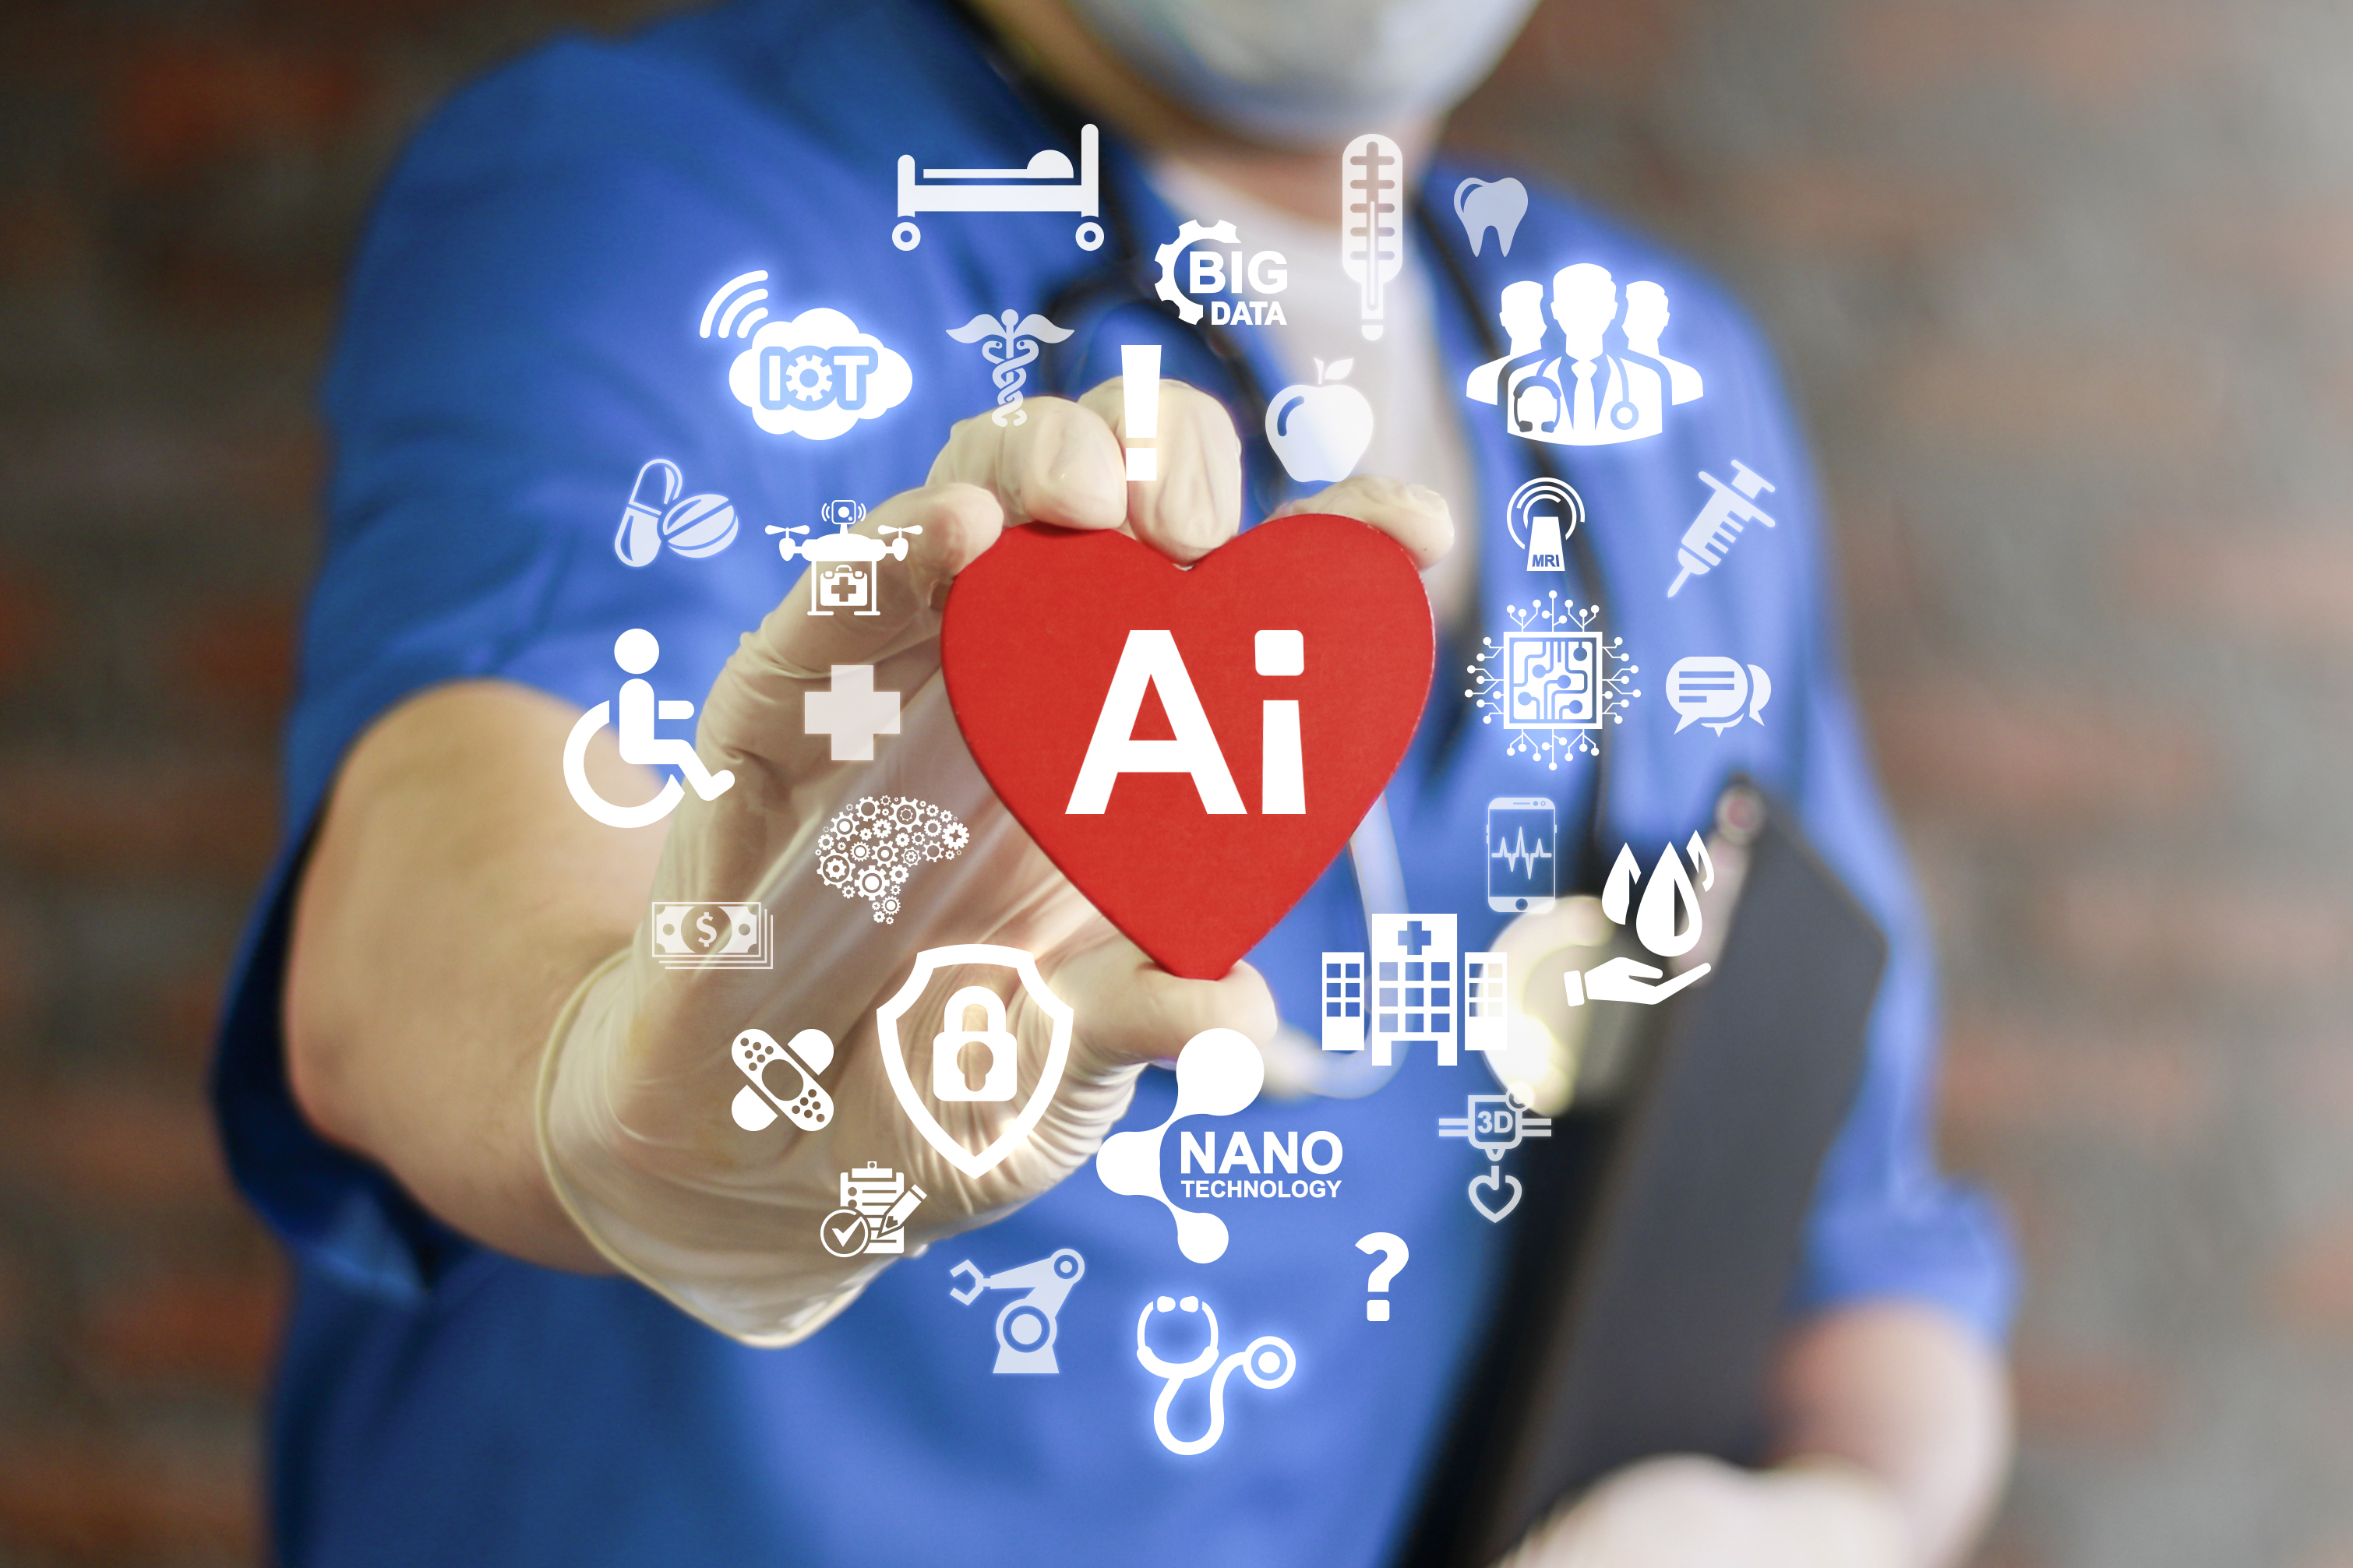 physician or medical staff person holding a heart symbol with Artificial Intelligence icon and other icons representing futuristic technology in medicine